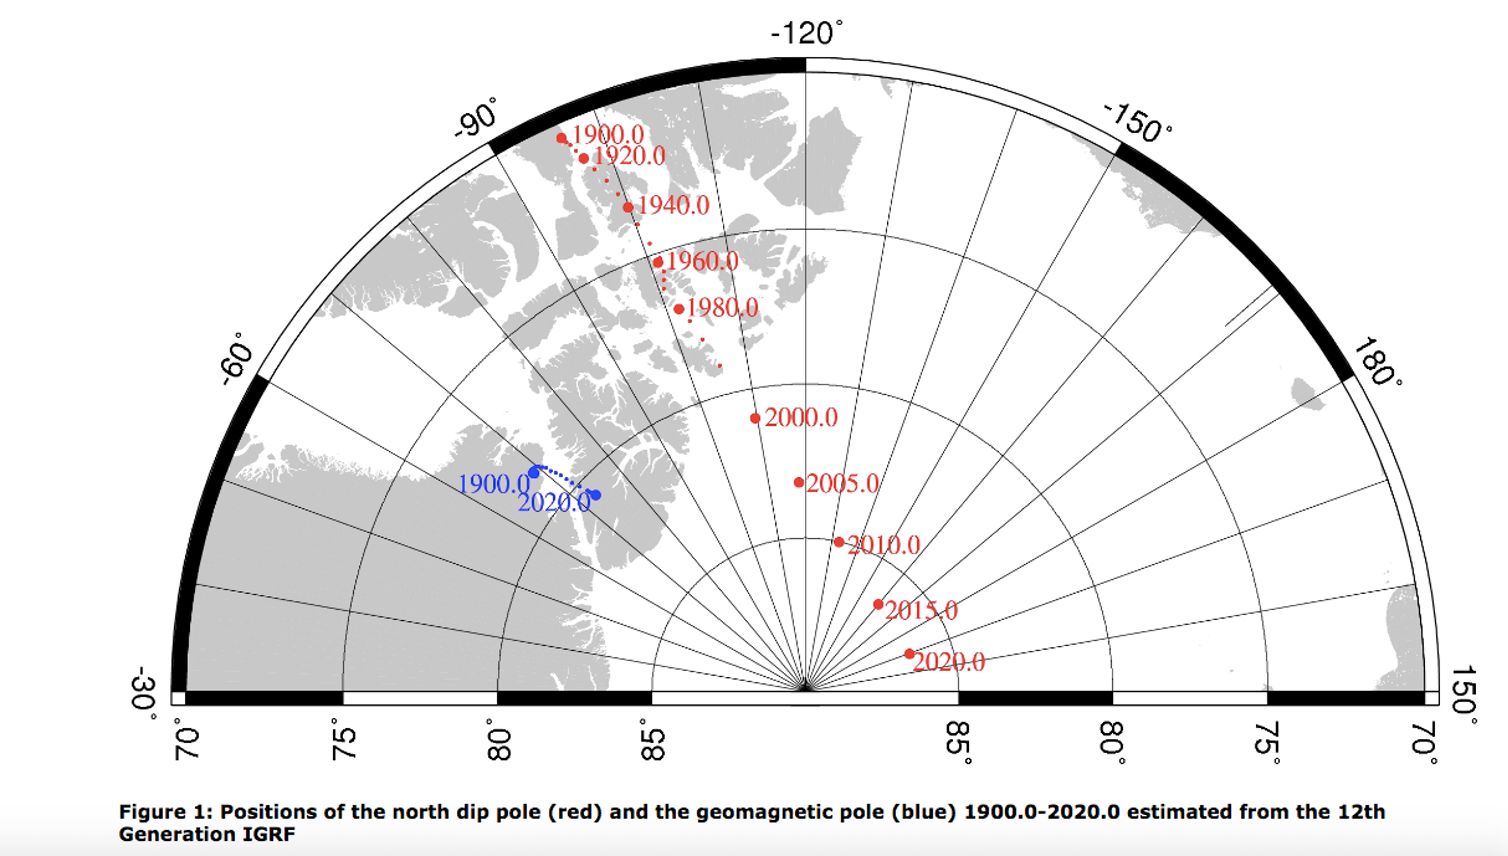 Positions of the north magnetic pole (red) and the geomagnetic pole (blue) between 1900 and 2020. Credit: British Geological Survey, CC BY-SA